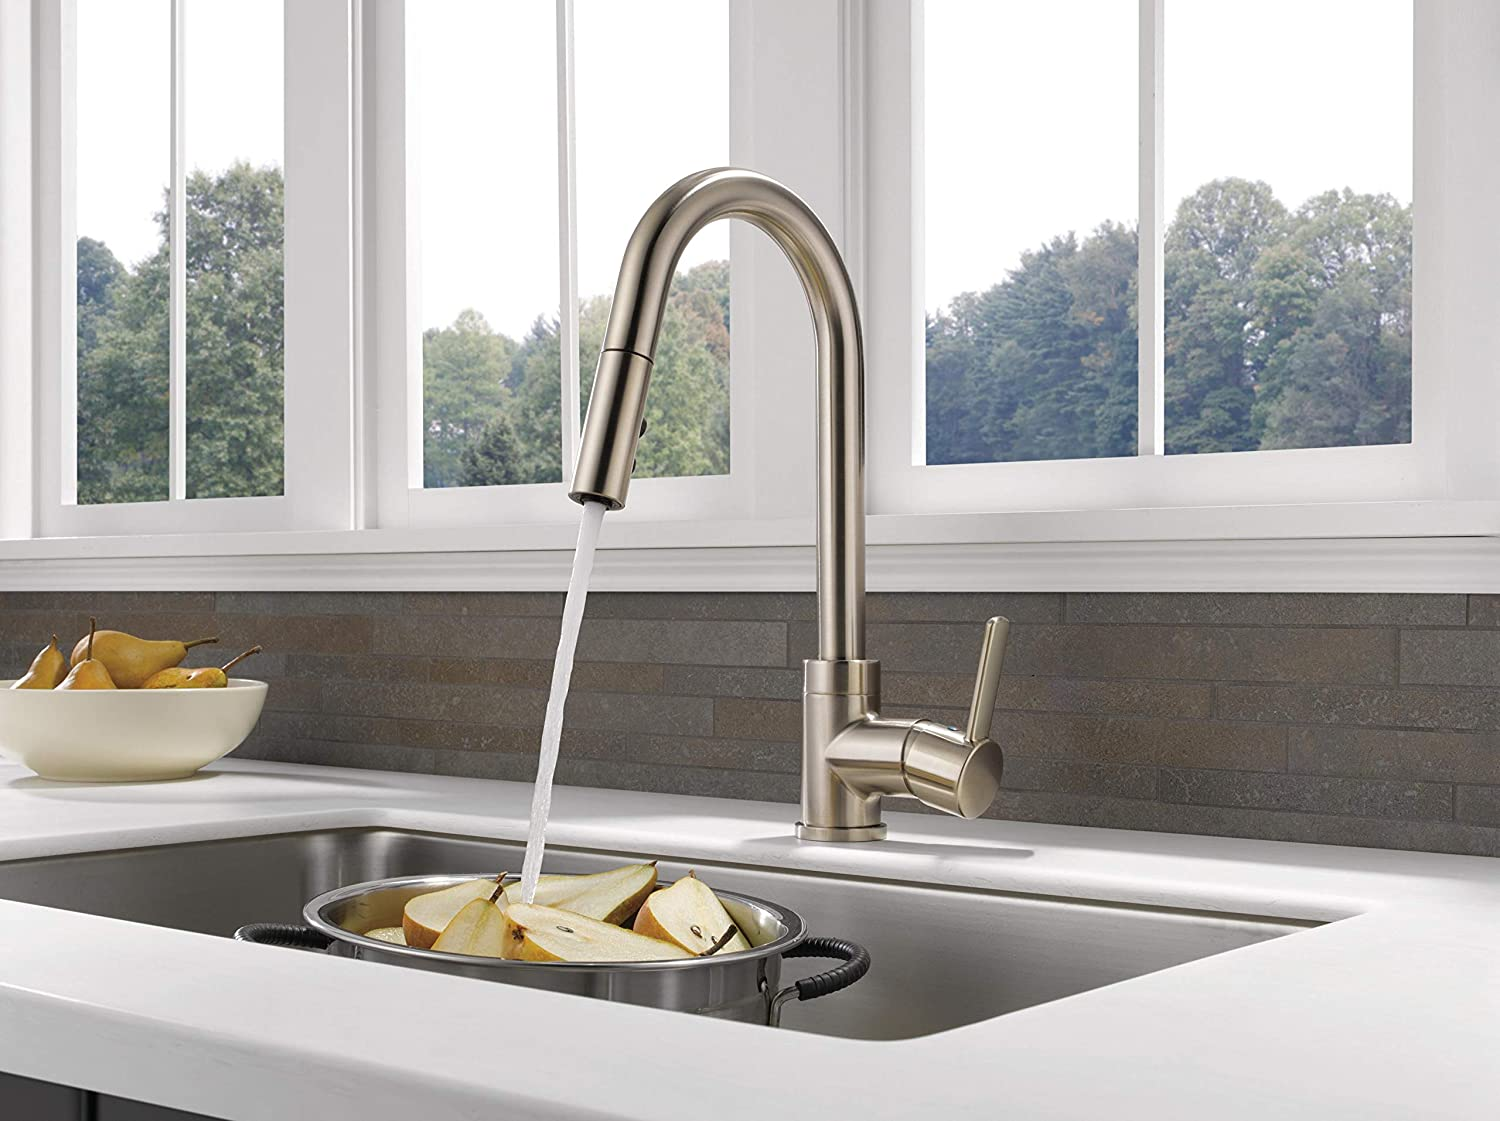 Peerless Precept Single-Handle Kitchen Sink Faucet with Pull Down Sprayer, Stainless P188152LF-SS